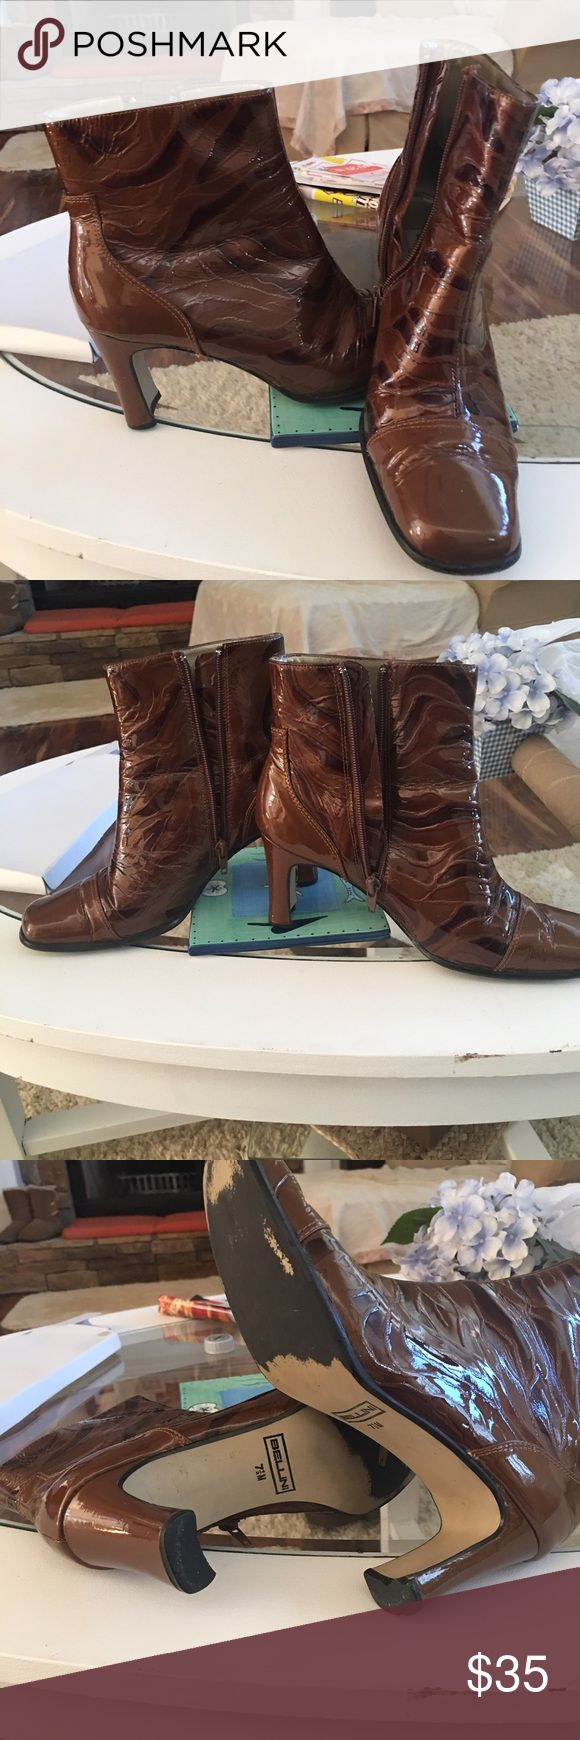 "Bellini  classy ankle boots Beautiful Balenie classy ankle boots and brown patent leather zip closure size 7 1/2  2 1/2 "" heel bellini Shoes Ankle Boots & Booties"